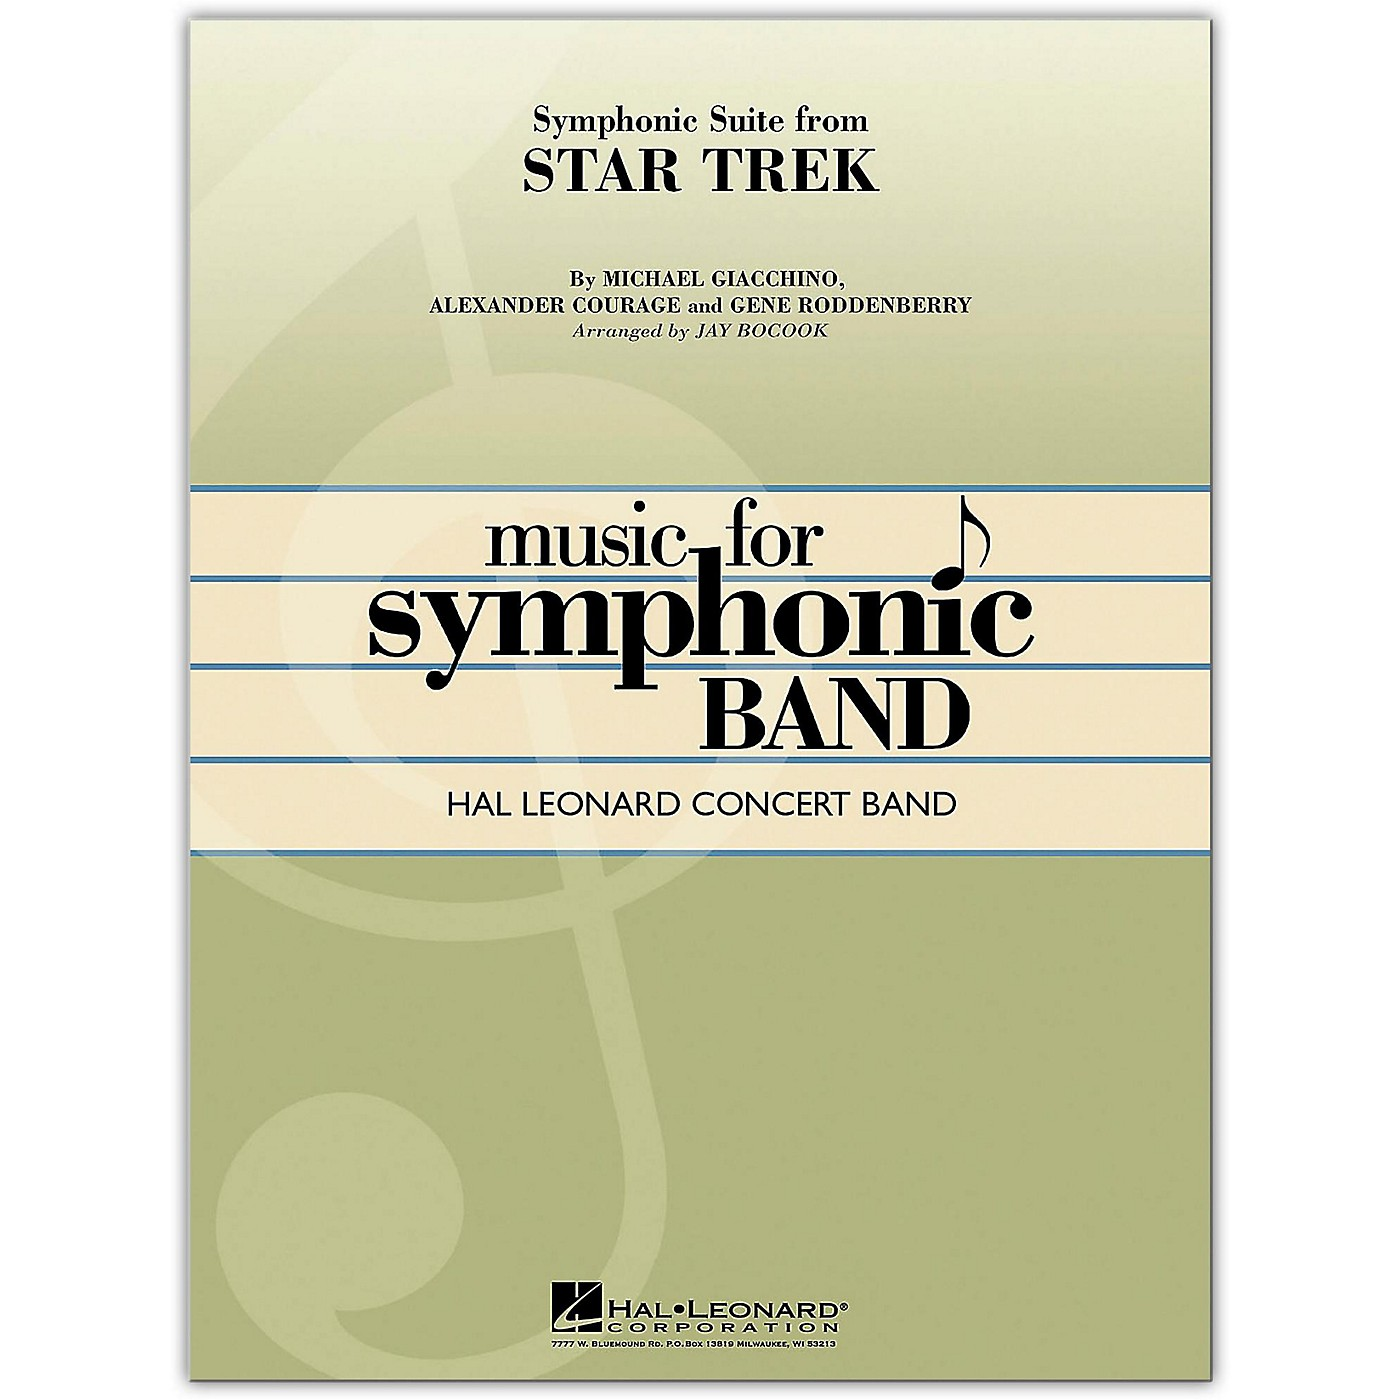 Hal Leonard Symphonic Suite from Star Trek Concert Band Level 4 thumbnail